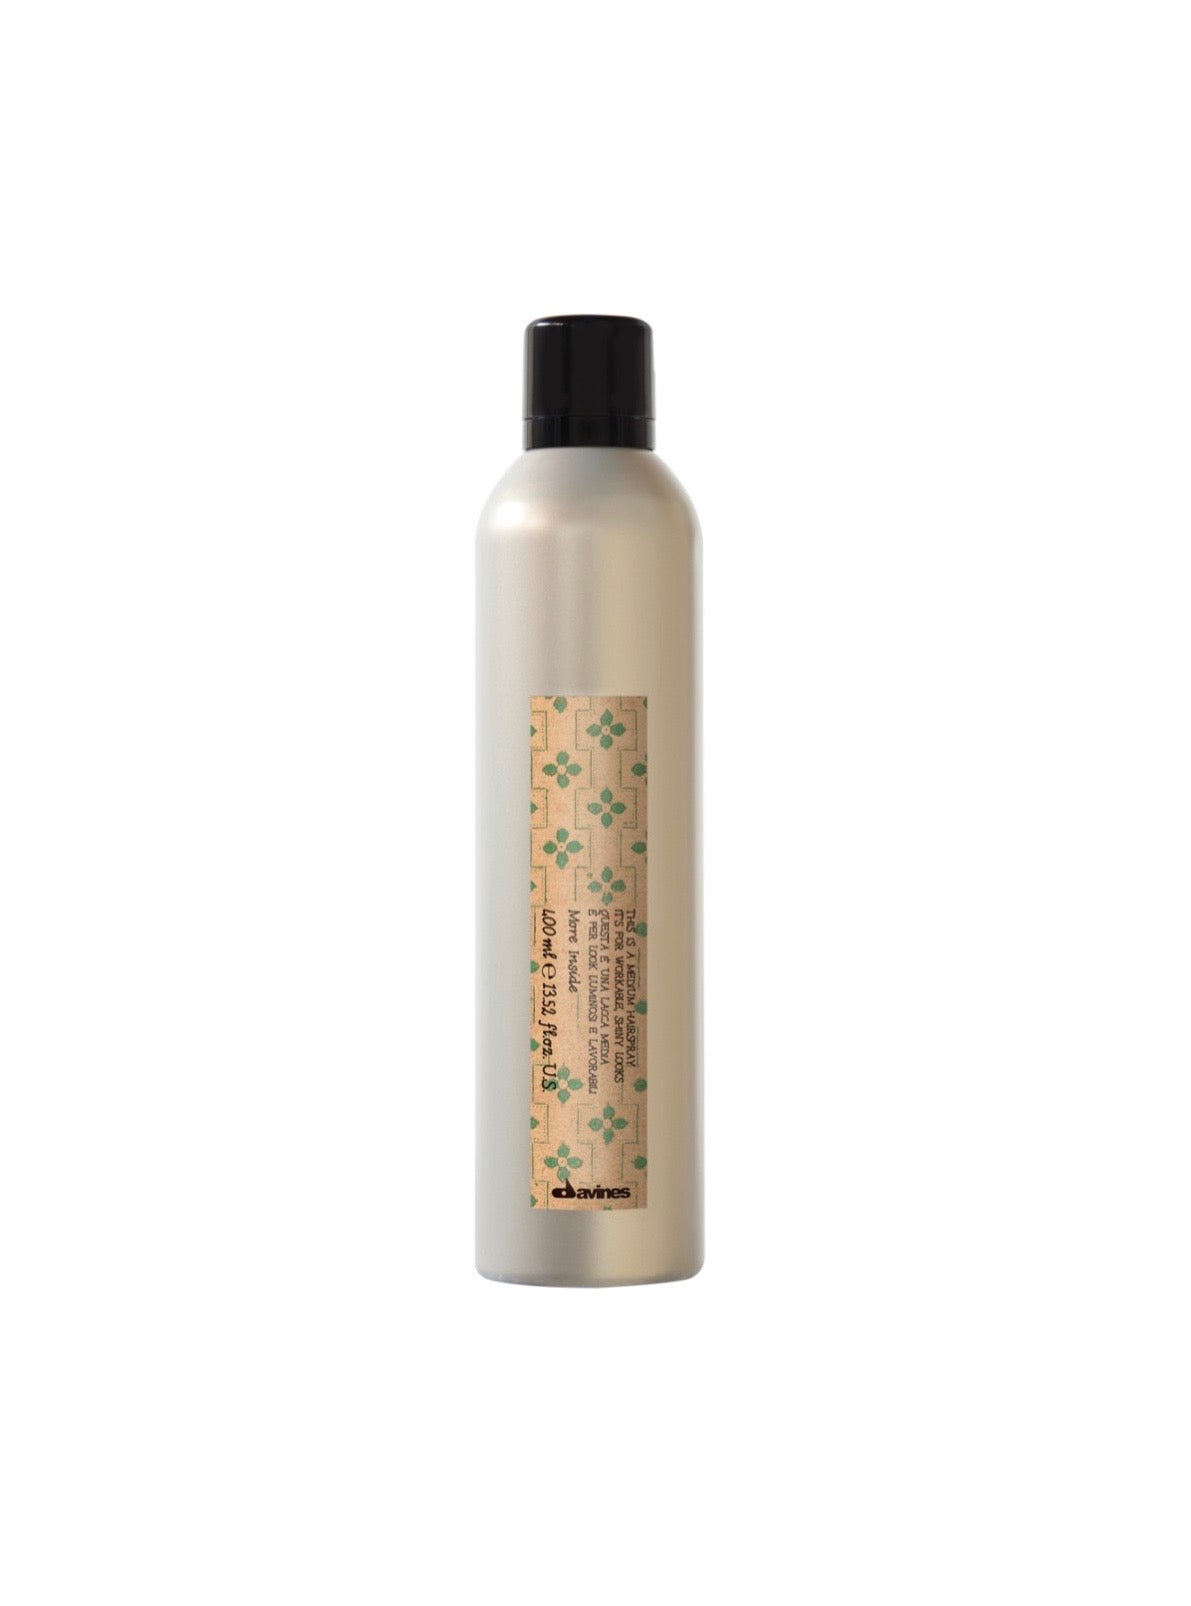 Davines Medium Hold Hairspray